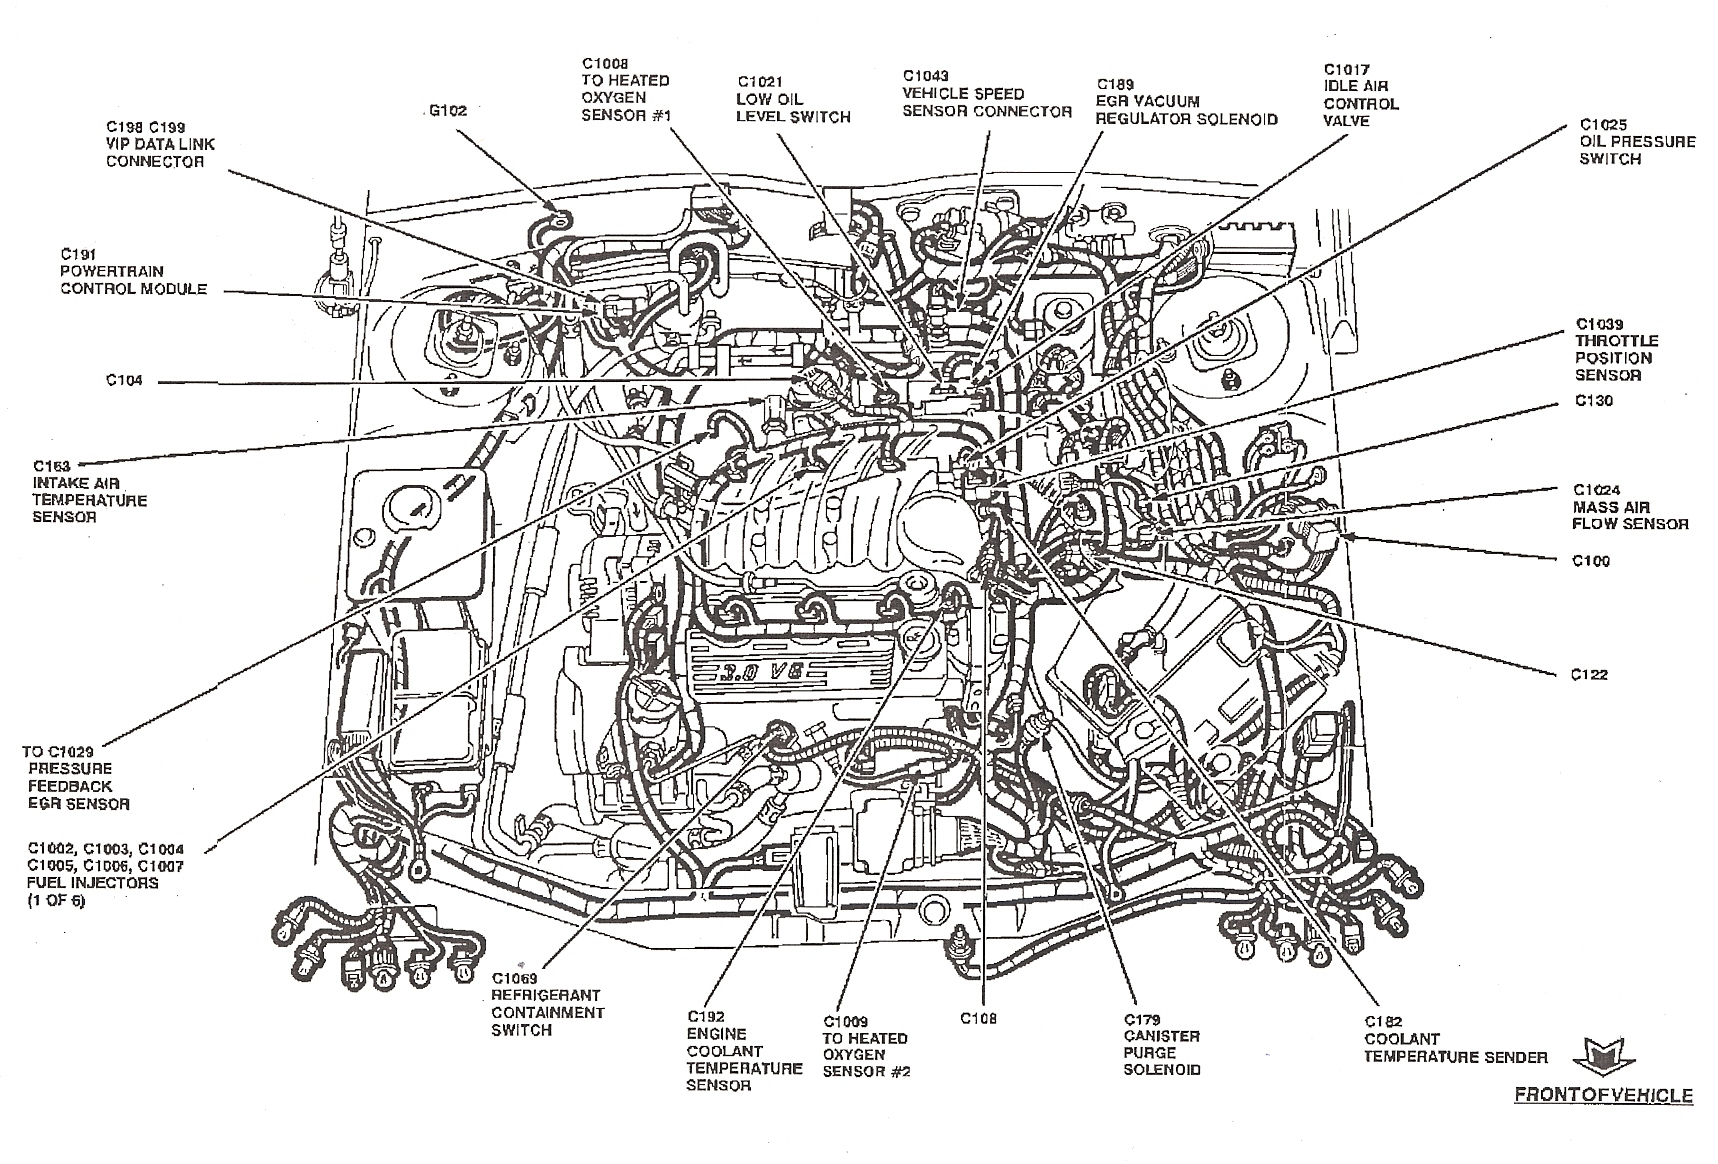 Ford taurus fuel line diagram